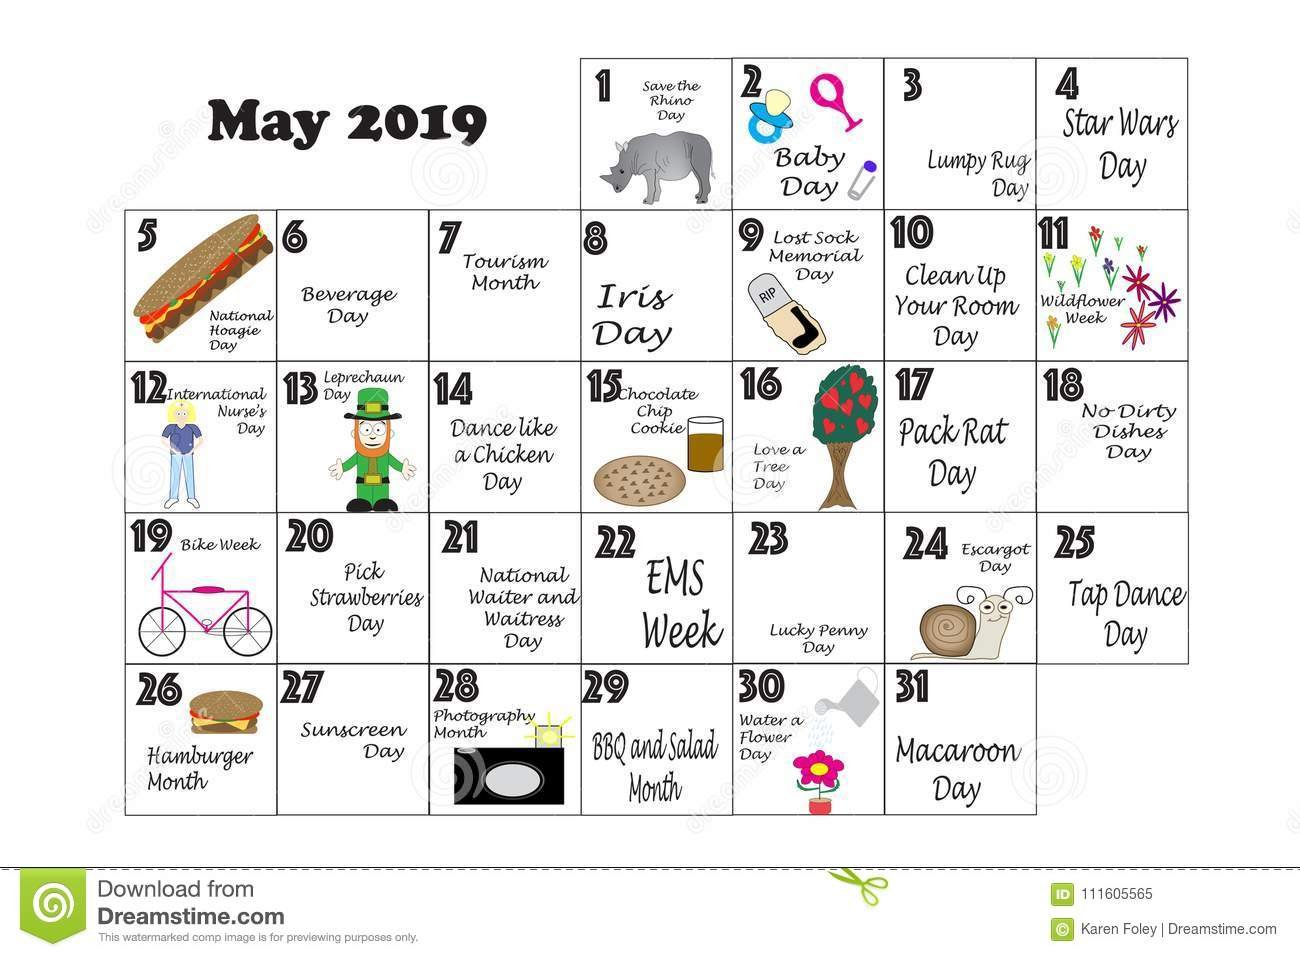 May 2019 Quirky Holidays And Unusual Events Stock Illustration Calendar 2019 Events And Holidays